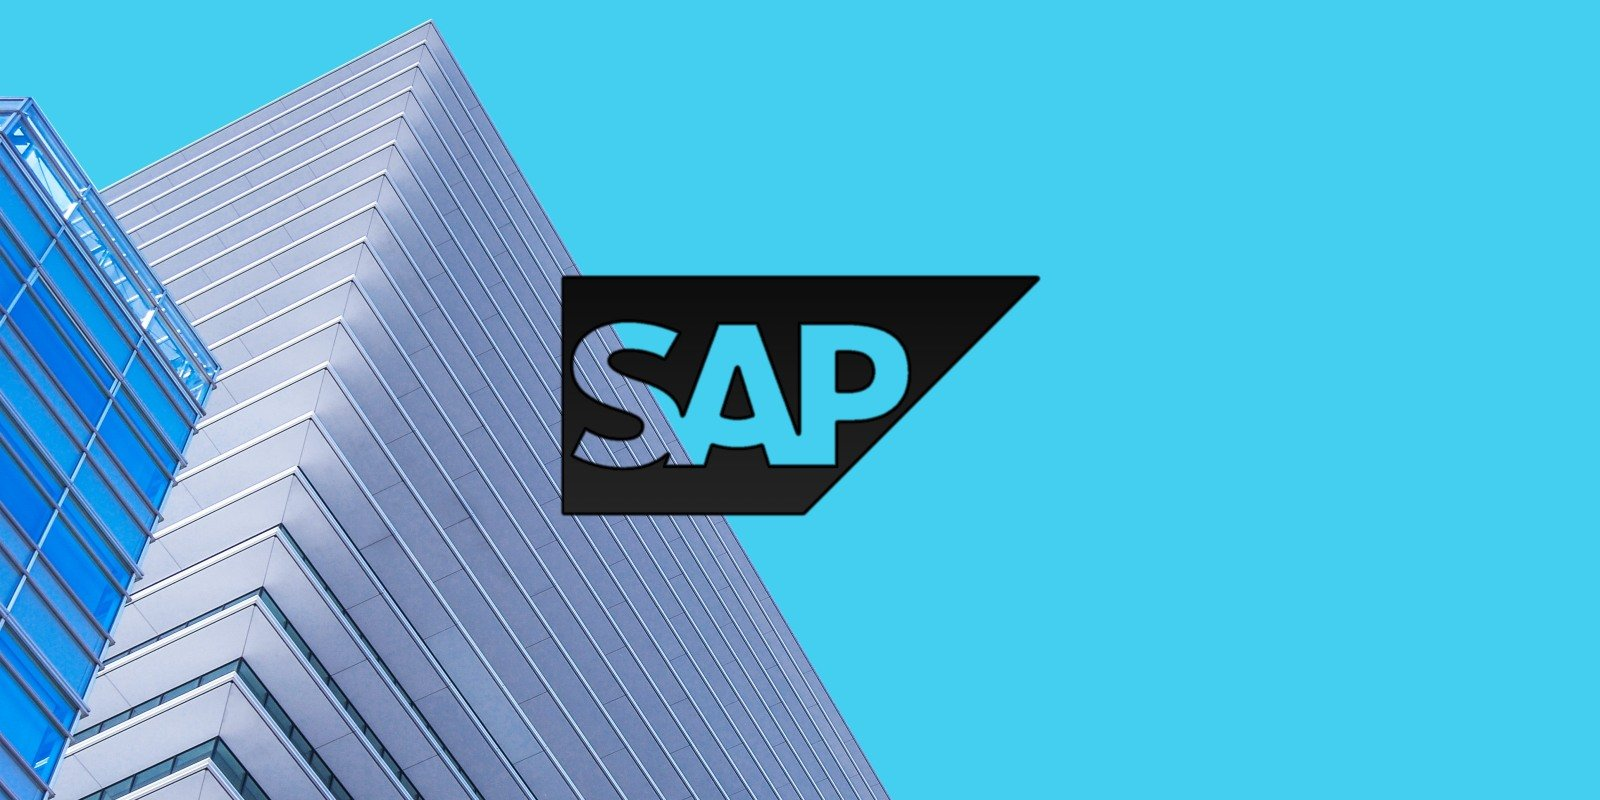 Ongoing attacks are targeting unsecured mission-critical SAP apps